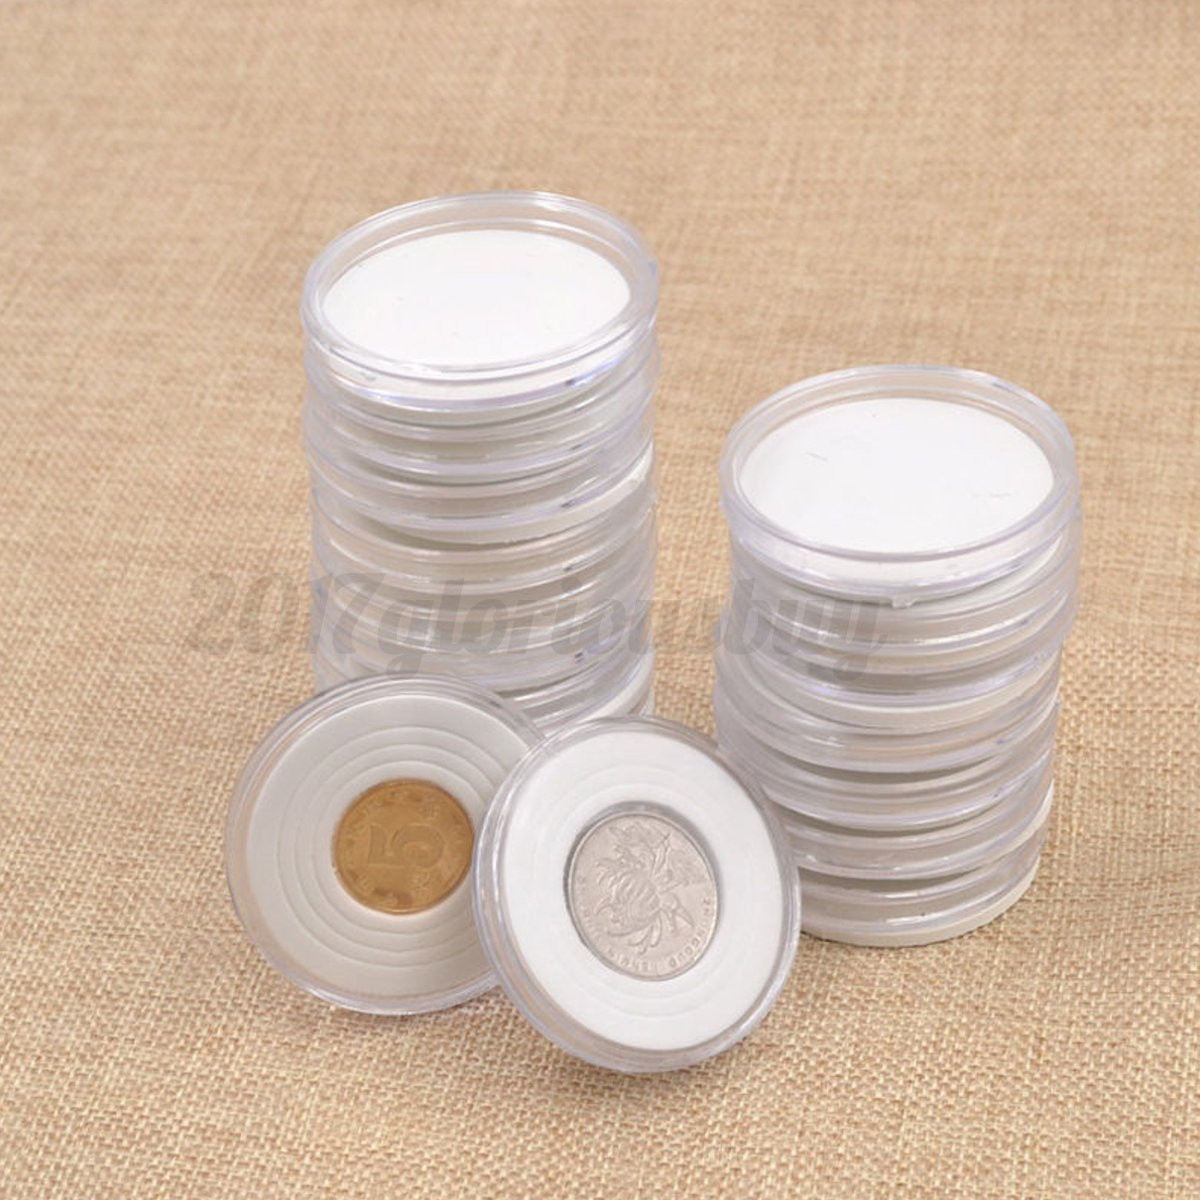 20pcs 30mm Clear Plastic Coin Capsules Coins Holders Containers Penny Holder Boxes